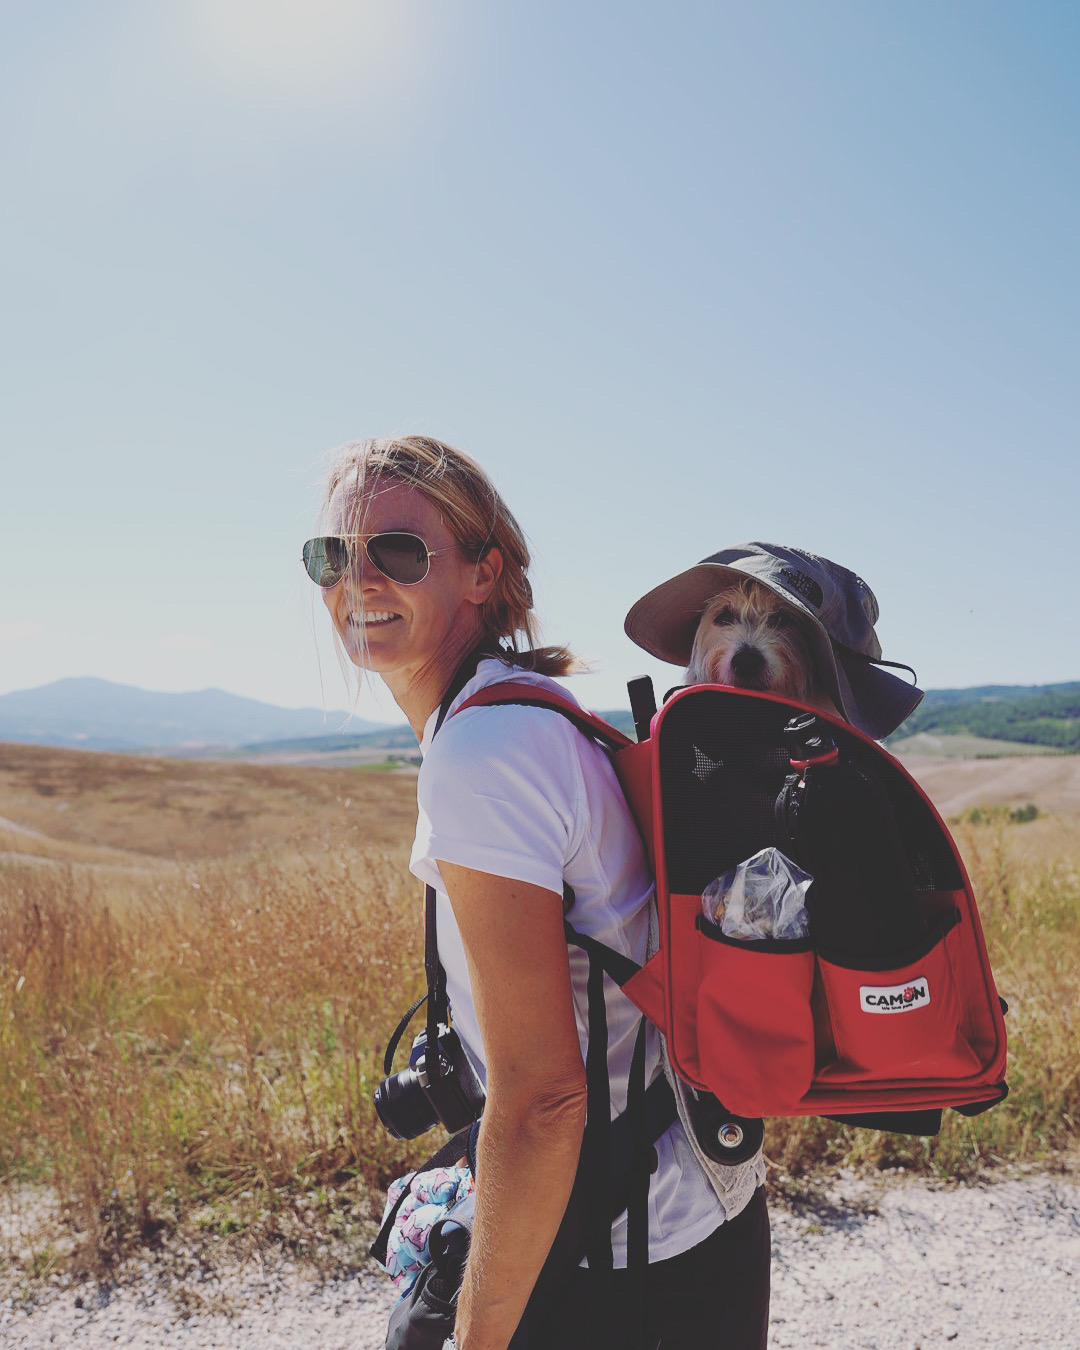 Maia and me hiking in a very hot day